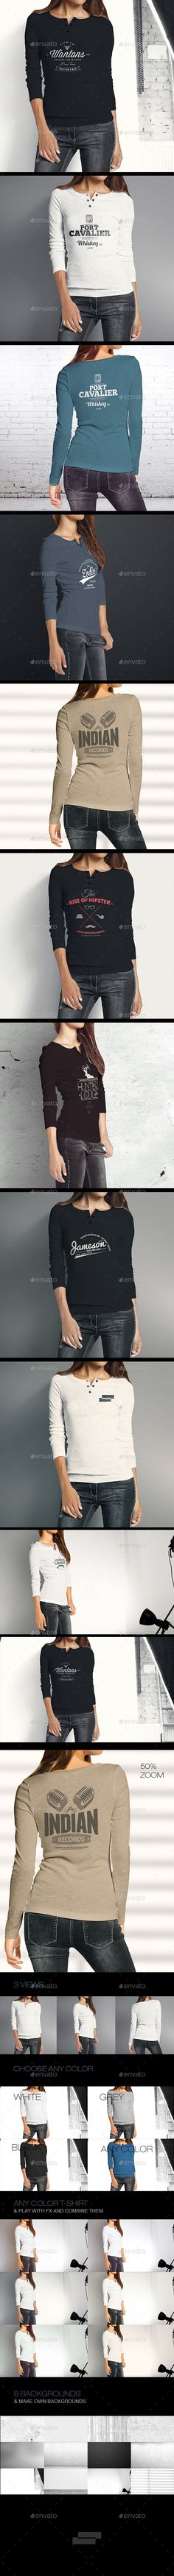 Woman Longsleeve Shirt Mockup — Photoshop PSD #shirt #mock up • Available here → https://graphicriver.net/item/woman-longsleeve-shirt-mockup/9610673?ref=pxcr